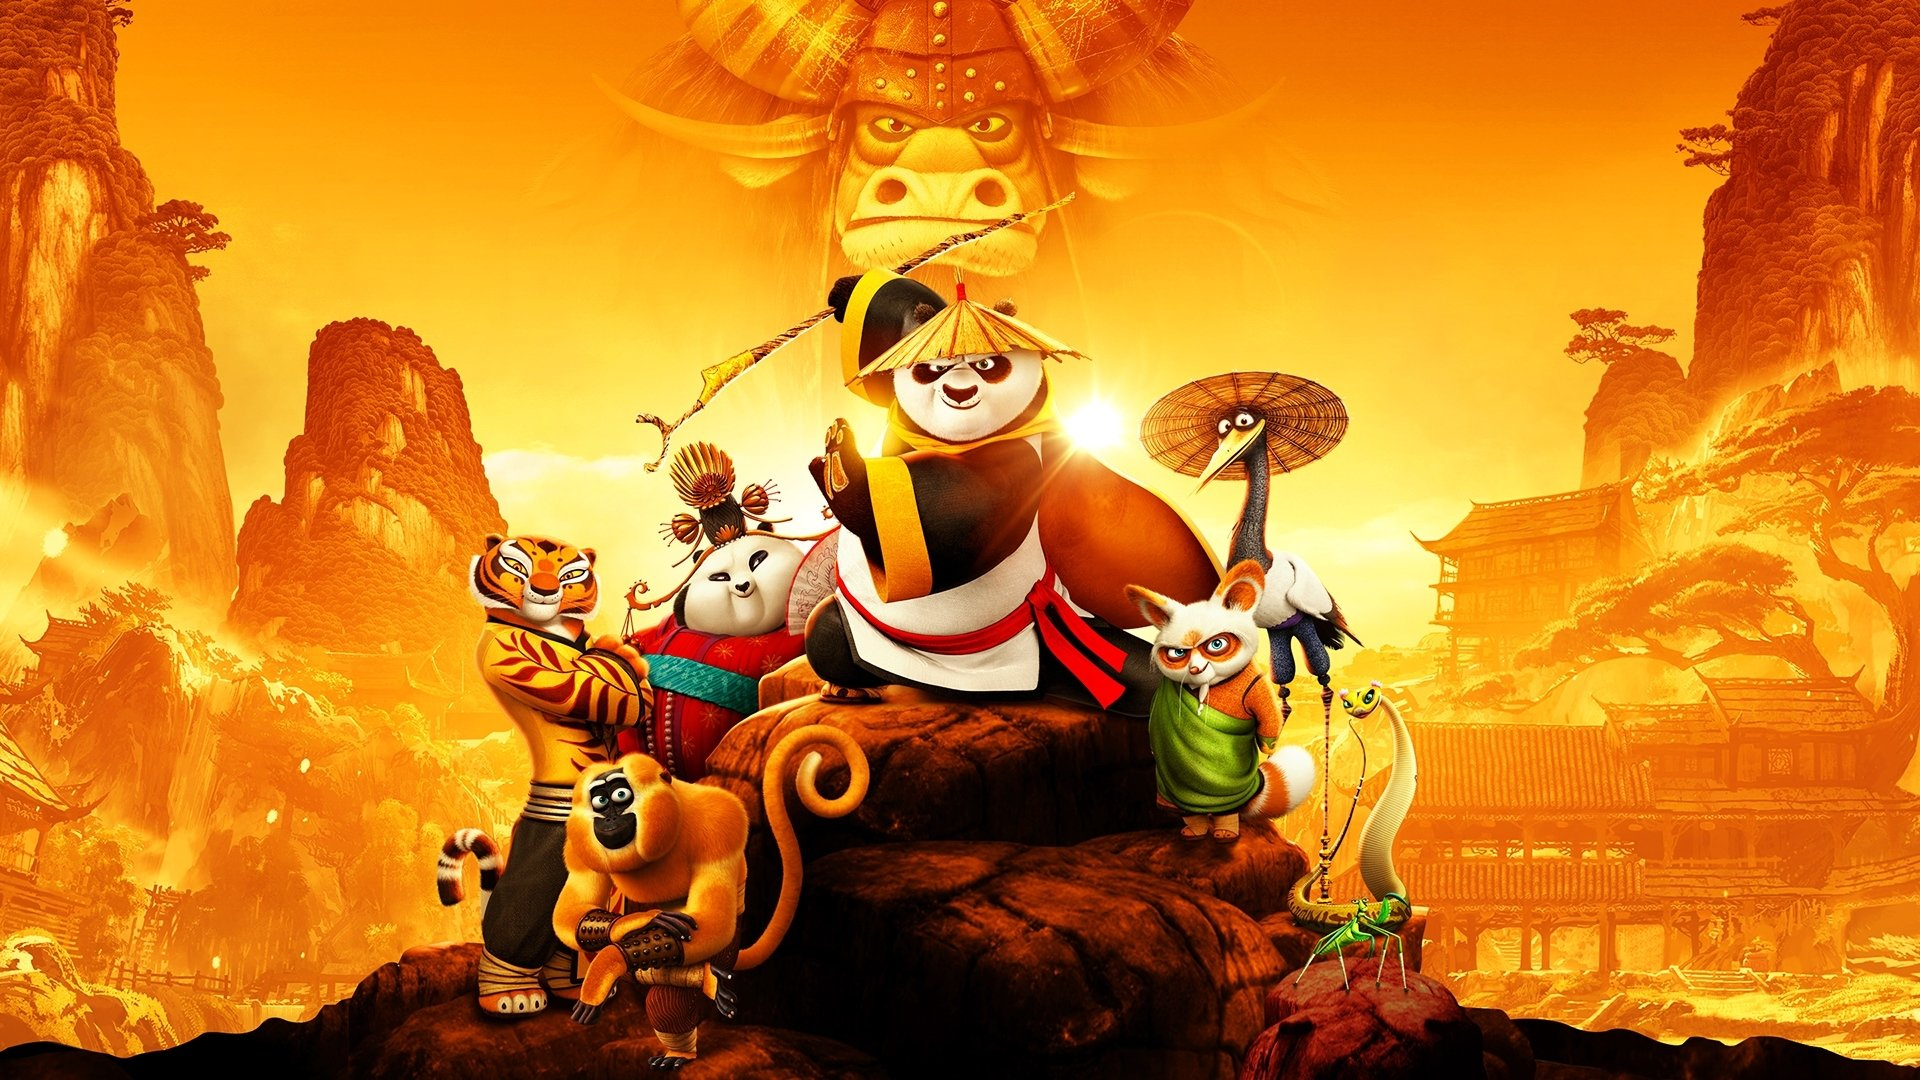 41 Po Kung Fu Panda Hd Wallpapers Background Images Wallpaper